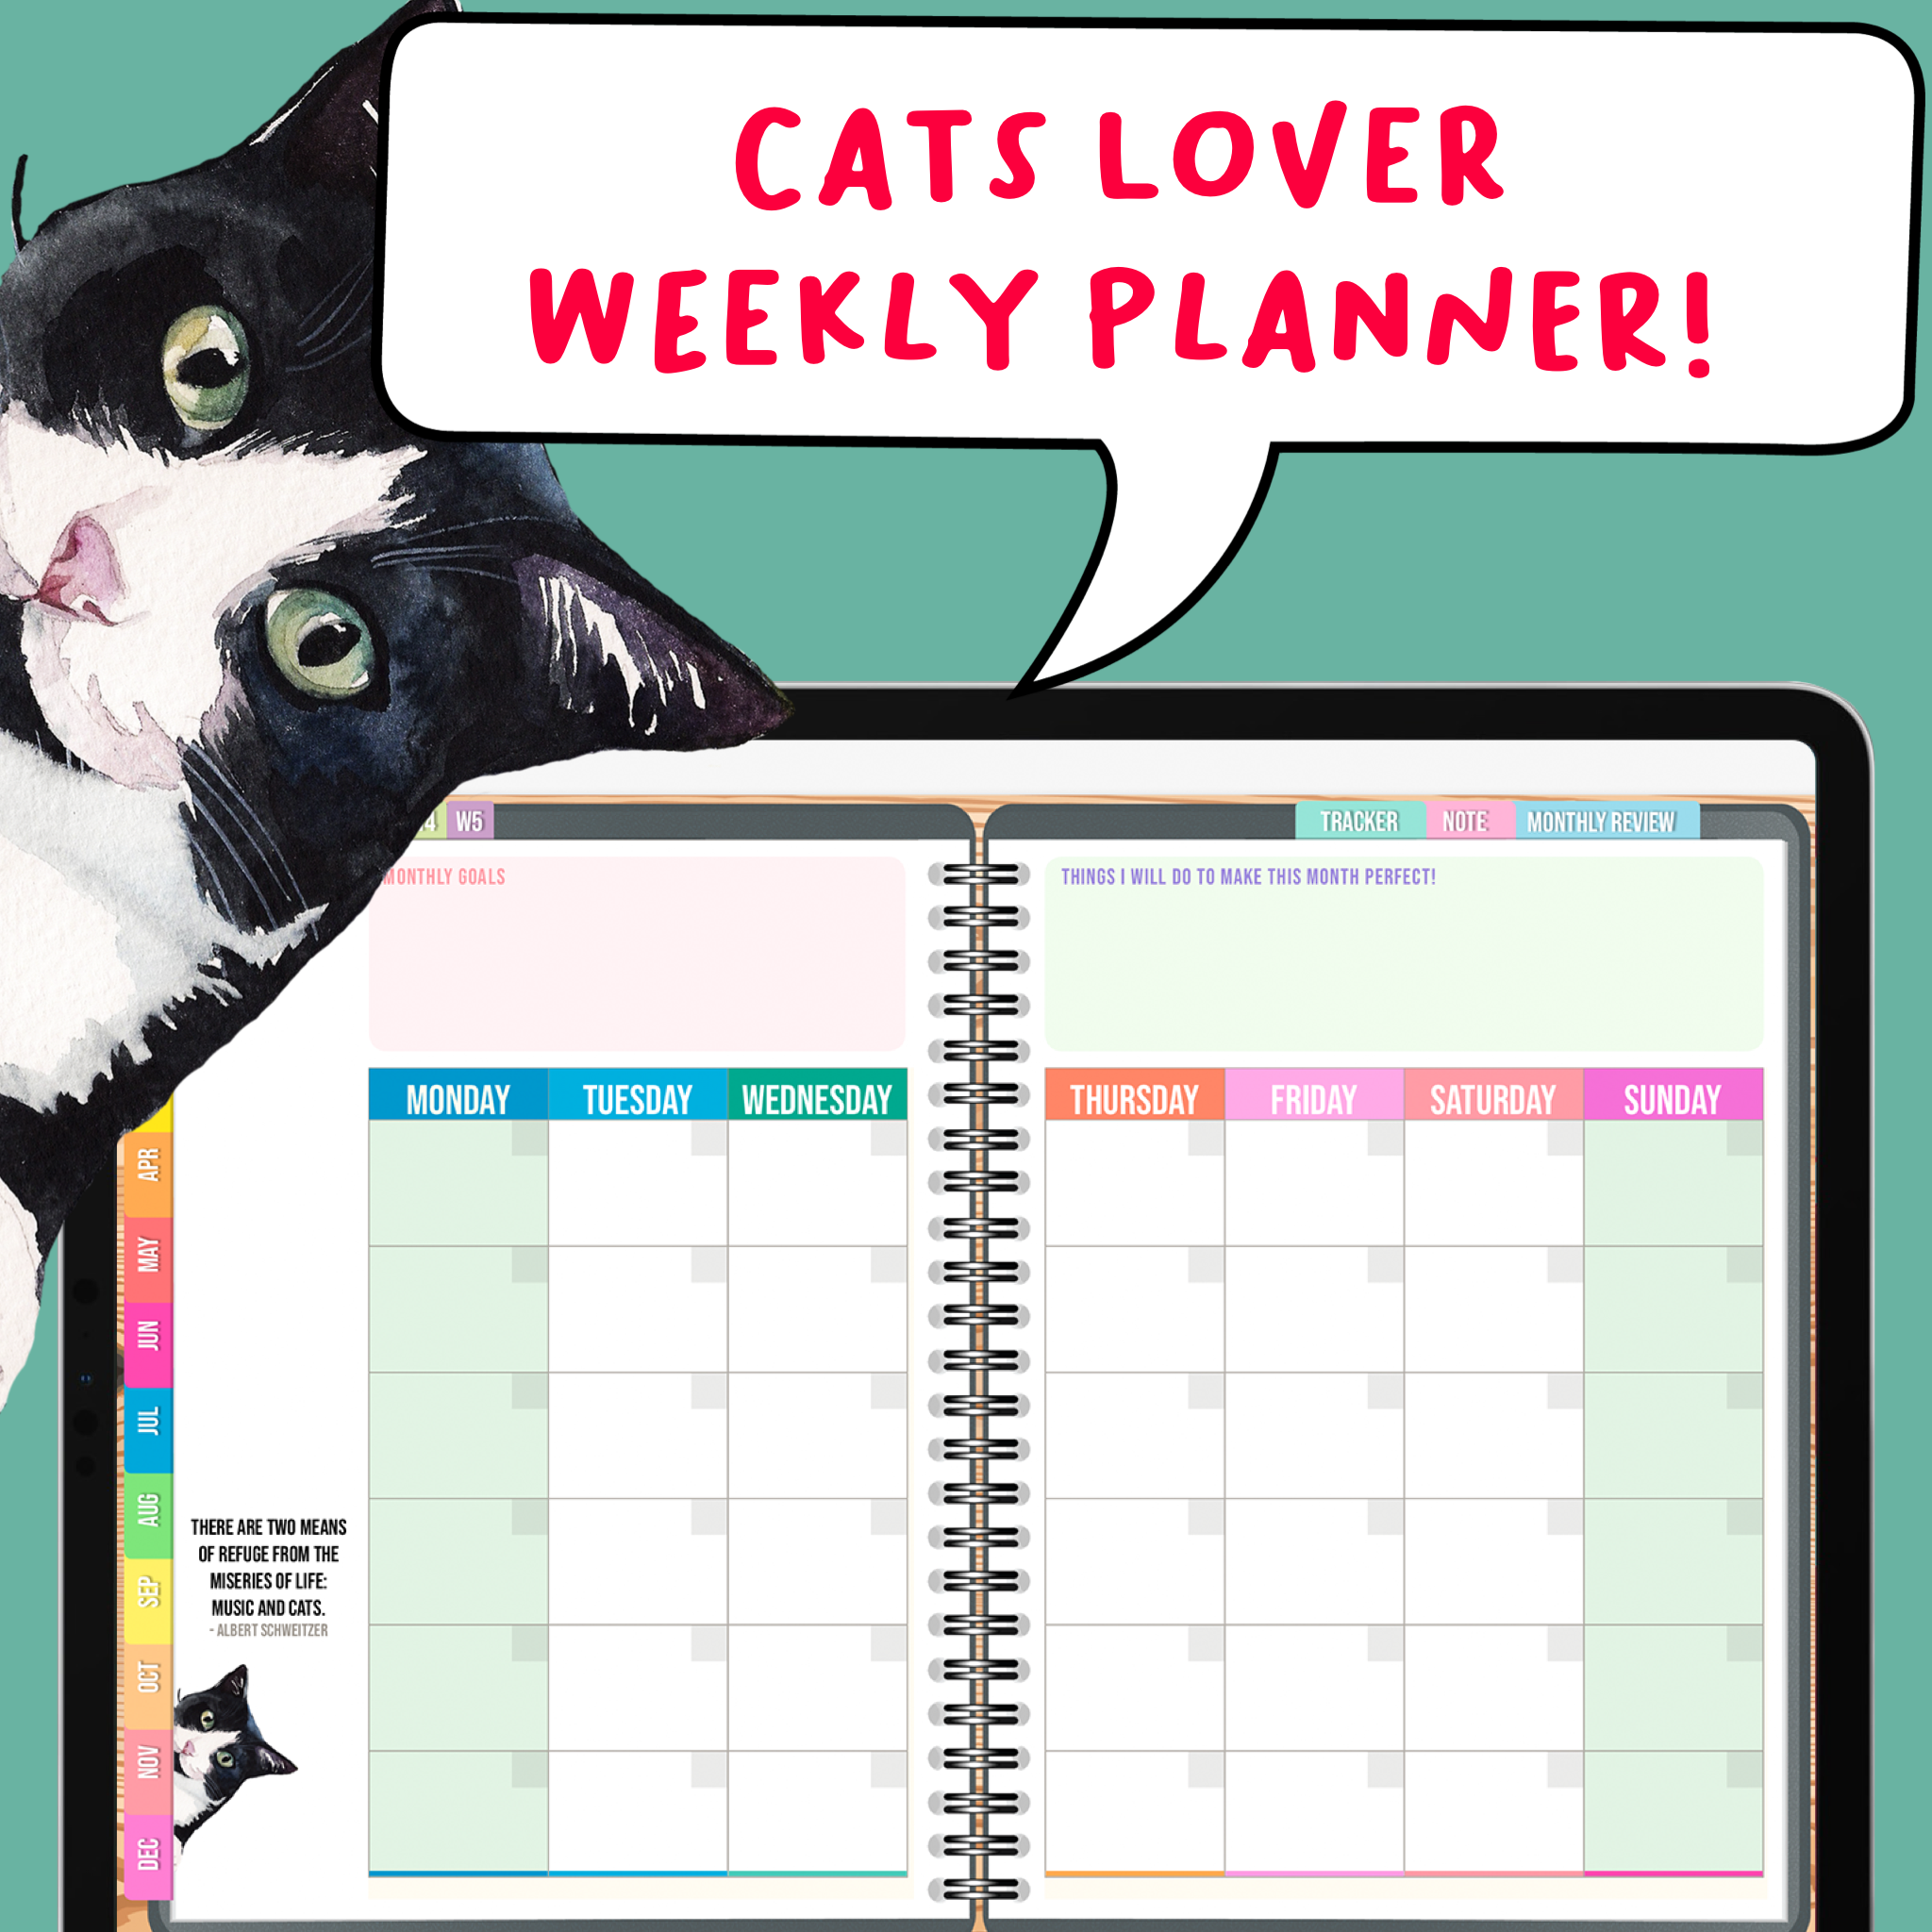 Cats Lover Edition BabaNana Digital Weekly Planner for GoodNotes Undated Sunday / Monday